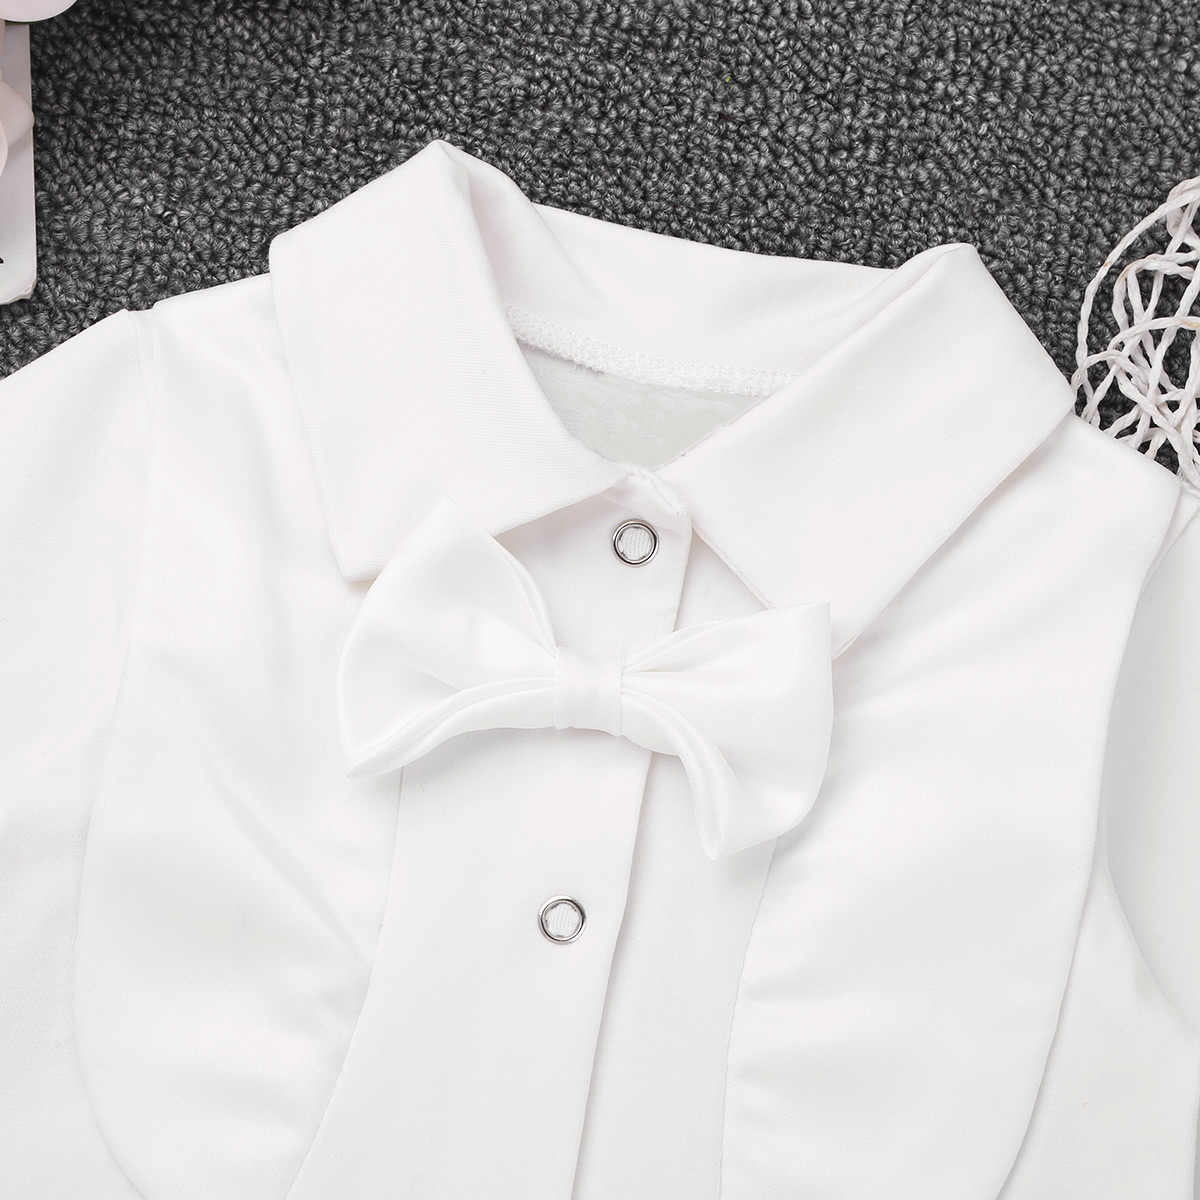 115896b149e17 Newborn Infant Baby Boys One-piece Baptism Suit Long Sleeves Lapel Bowtie  Romper Jumpsuit for Baby Boys Christening Outfit